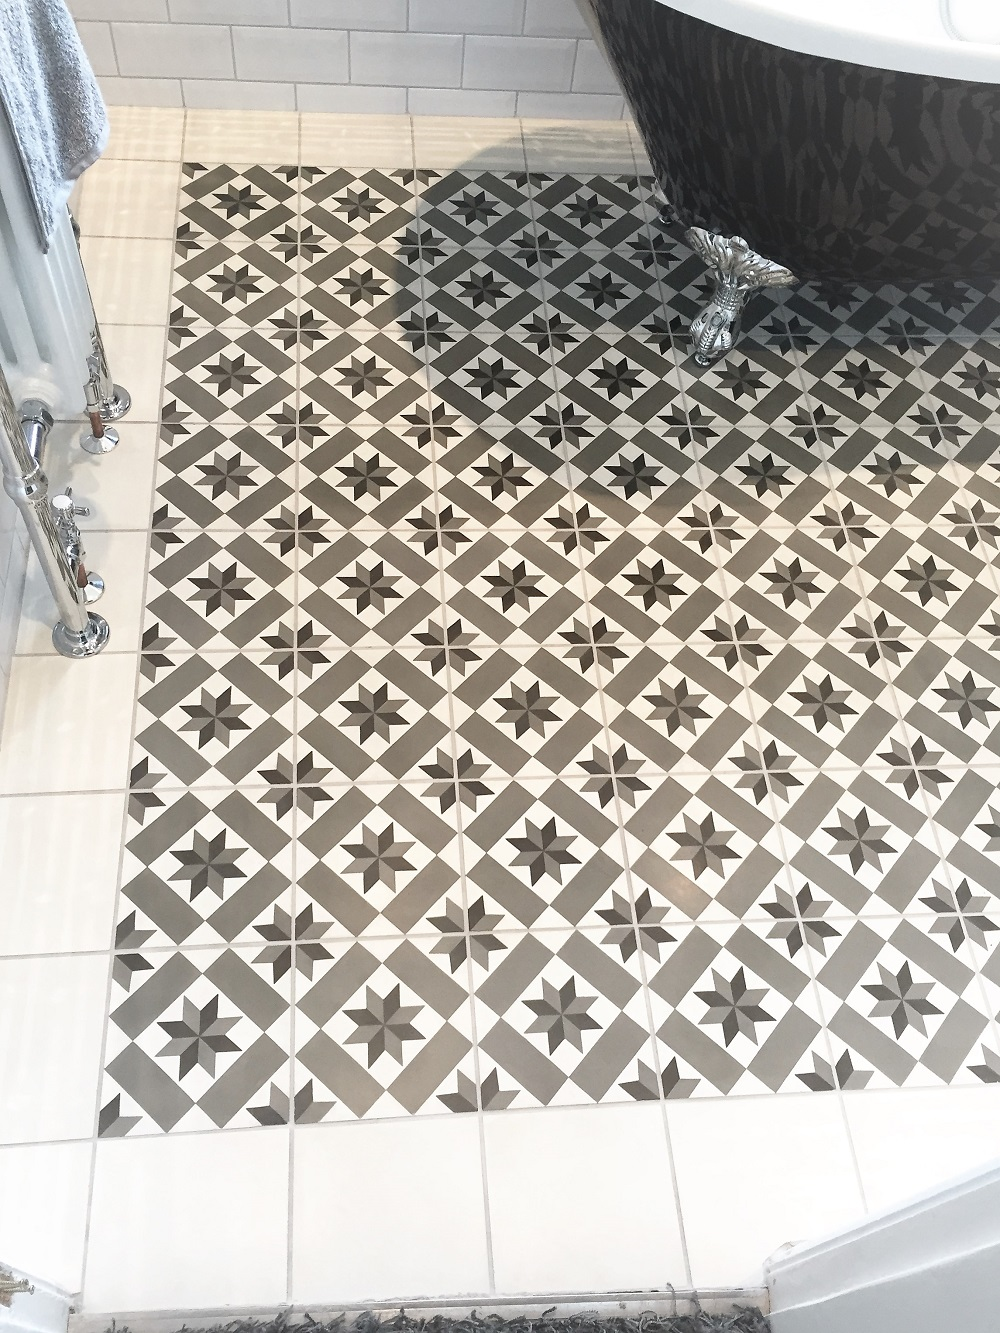 Encaustic Tiles Bathroom Floor Interiors Design